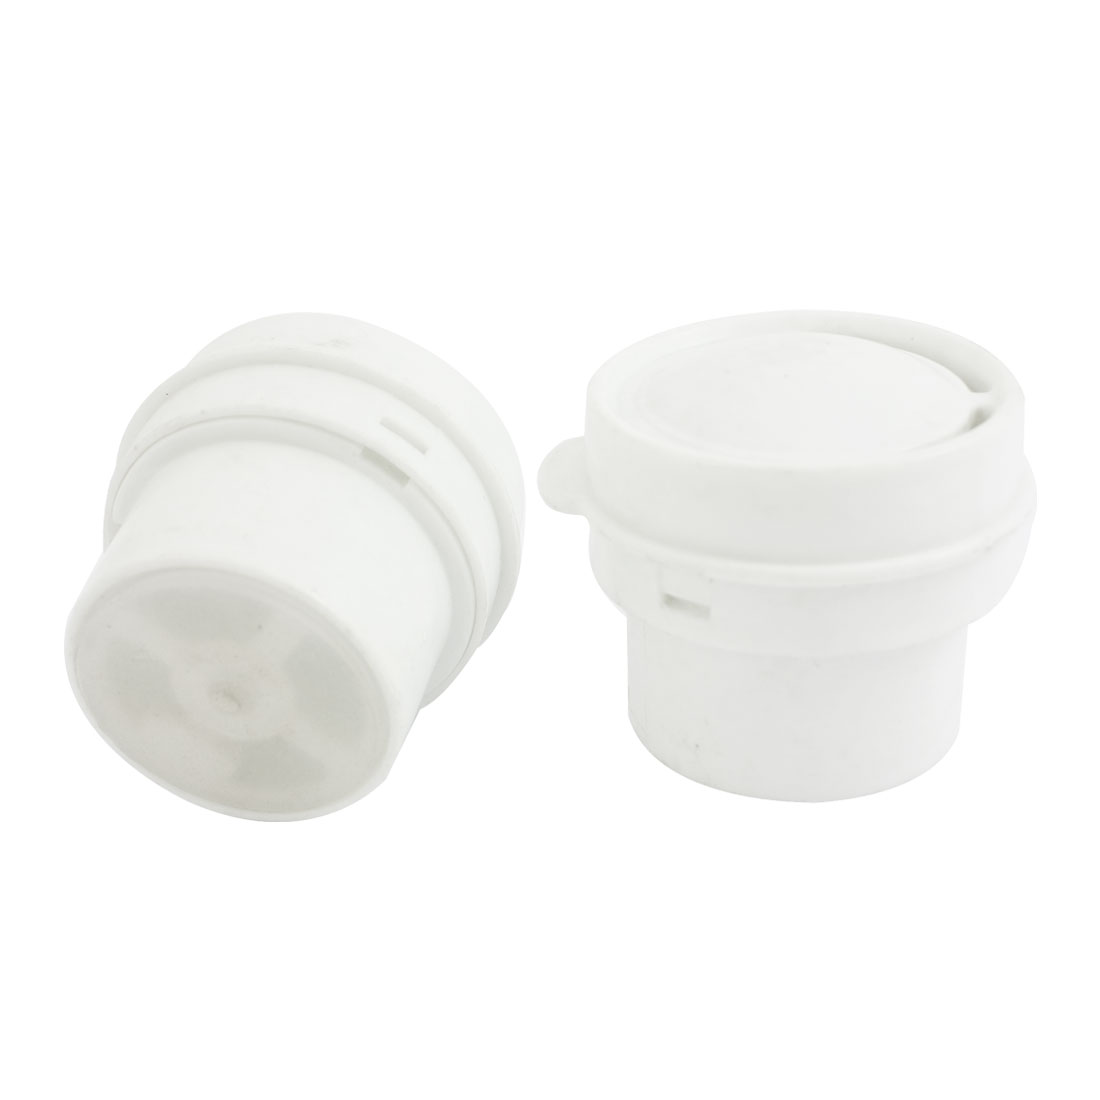 Rice Cooker 41mm Diameter Anti Spill Steam Valve Vent White 2 Pieces